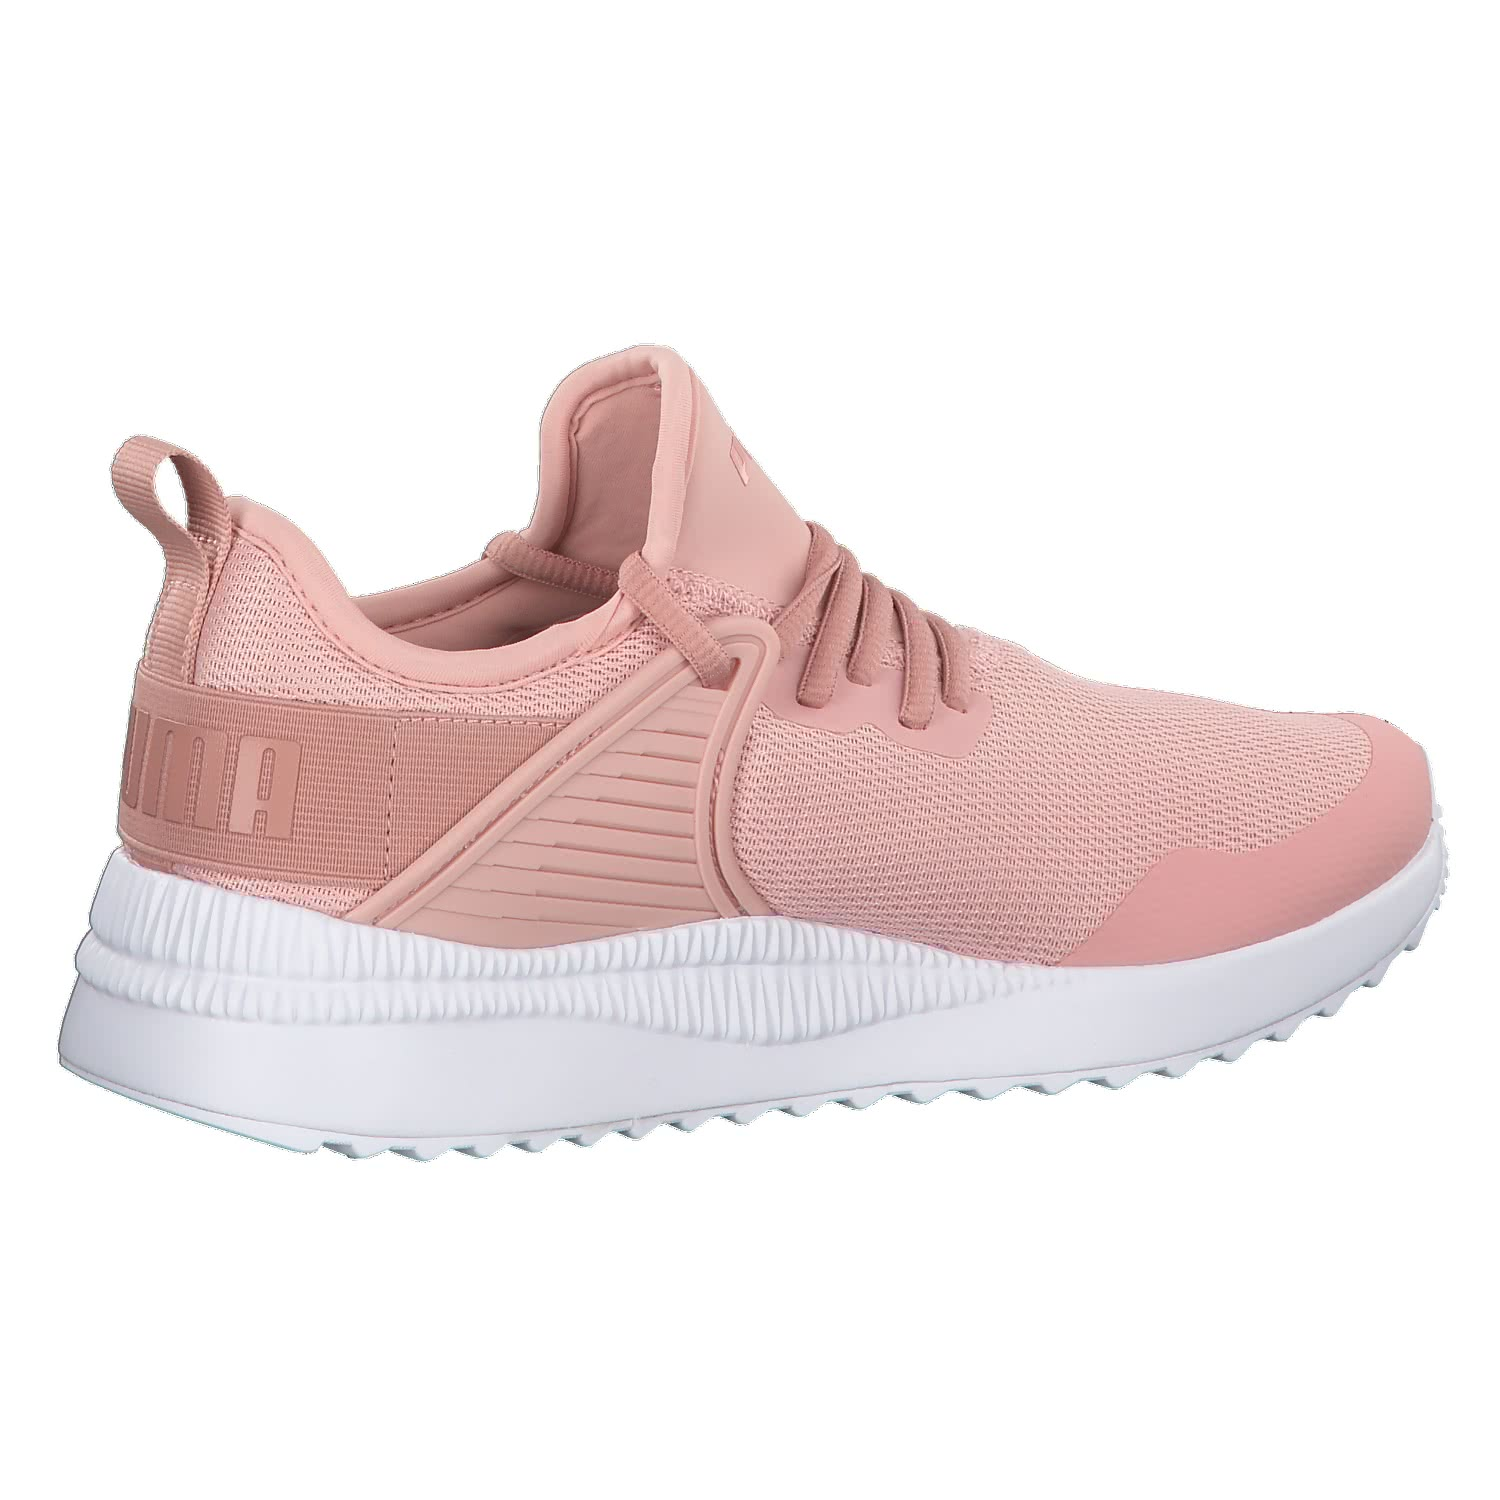 Puma Sneakers Pacer Next Cage in Rosa - 52% plwJSTIh